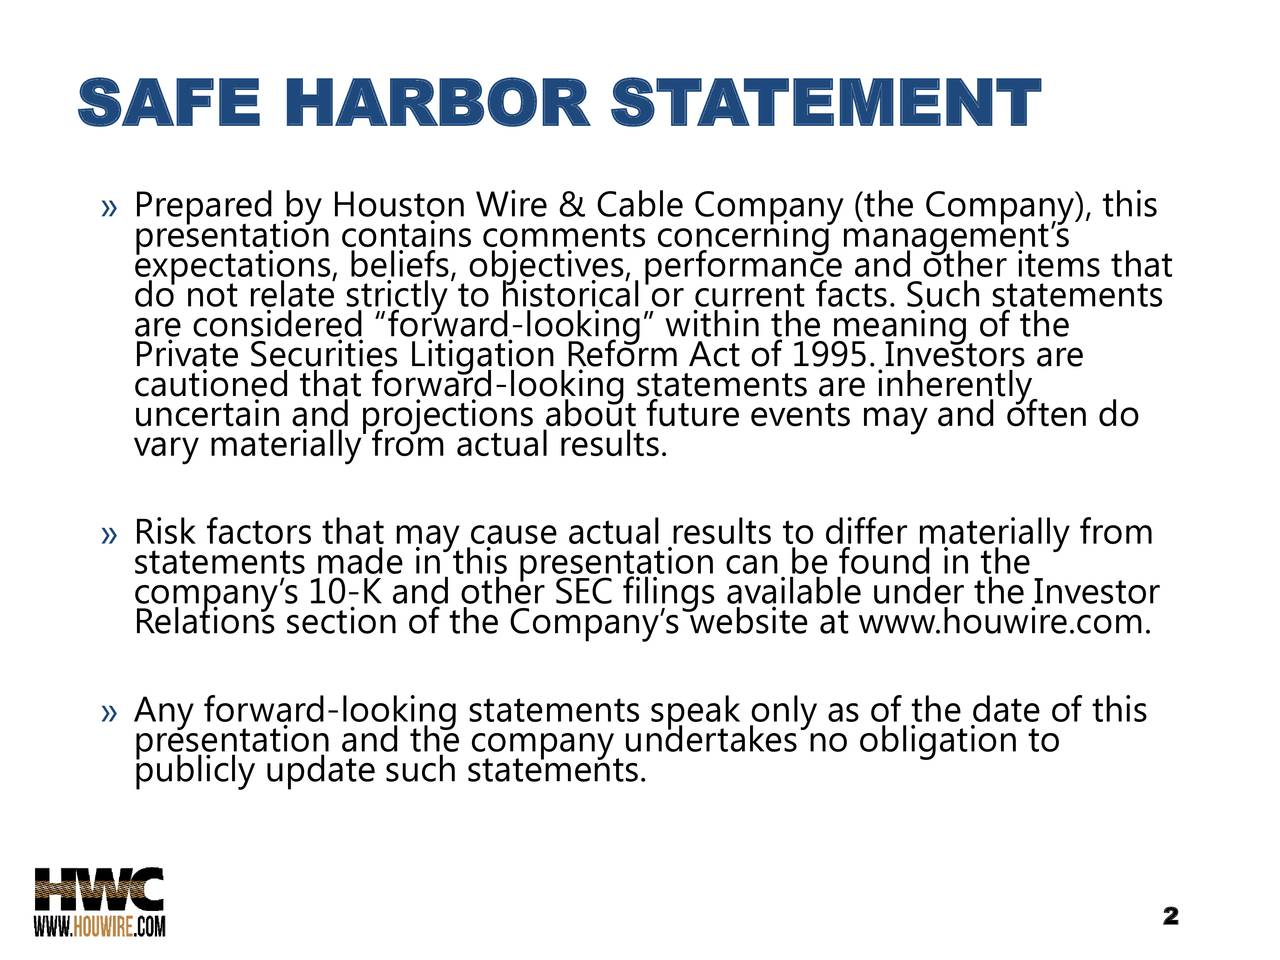 """» Prepared by Houston Wire & Cable Company (the Company), this expectations, beliefs, objectives, performance and other items that do not relate strictly to historical or current facts. Such statements are considered """"forward-looking"""" within the meaning of the Private Securities Litigation Reform Act of 1995. Investors are cautioned that forward-looking statements are inherently vary materially from actual results.re events may and often do » Risk factors that may cause actual results to differ materially from company's 10-K and other SEC filings available under the Investor Relations section of the Company's website at www.houwire.com. » presentation and the company undertakes no obligation to of this publicly update such statements. 2"""